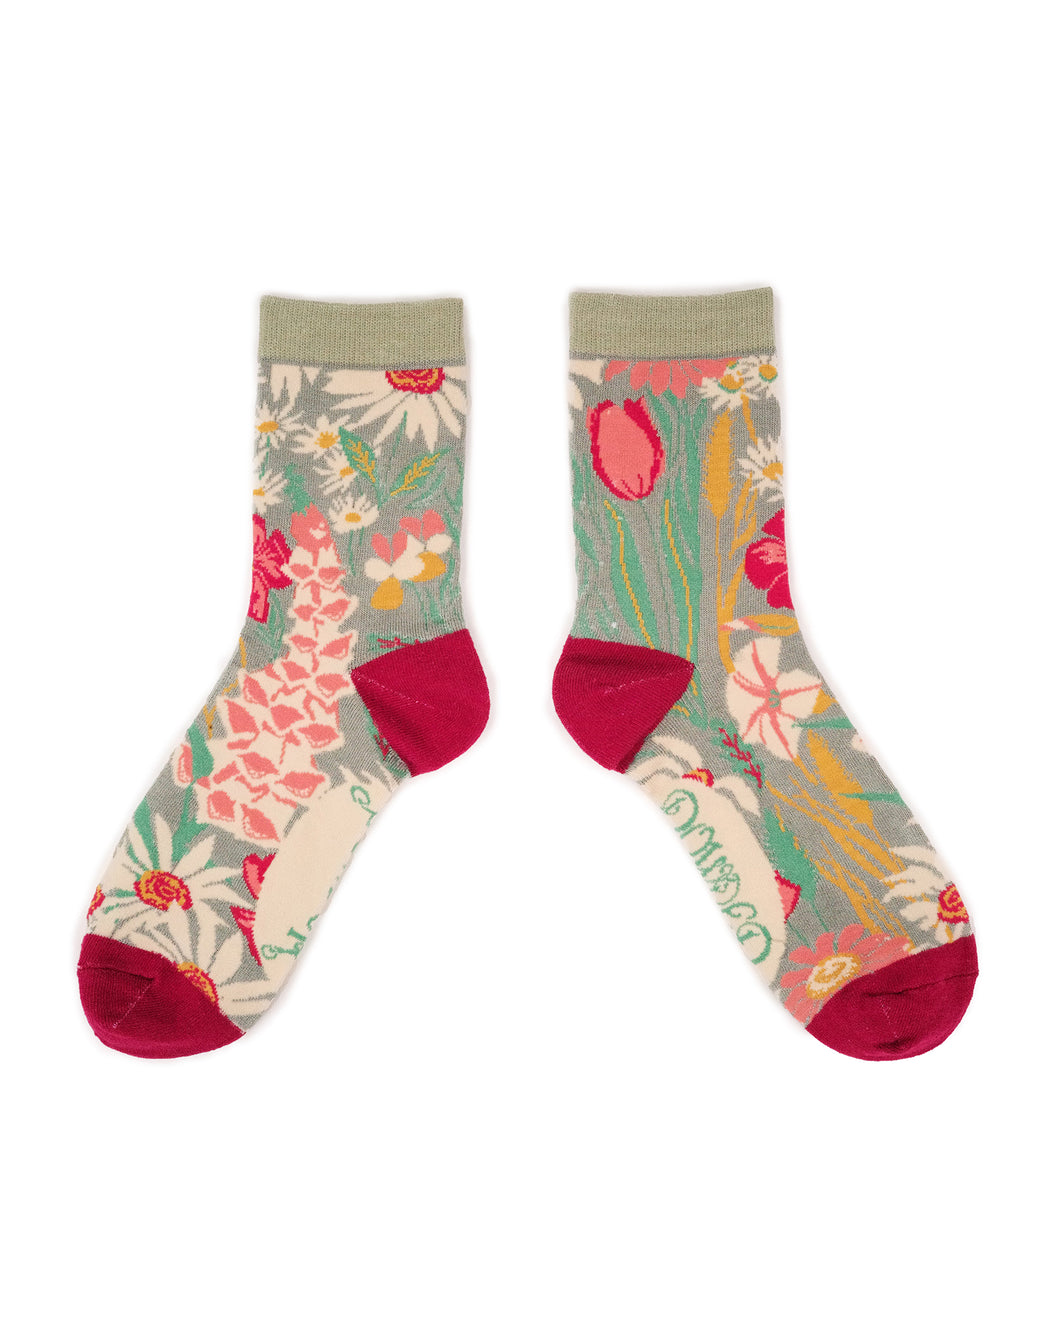 Country Garden Ankle Socks - Mint